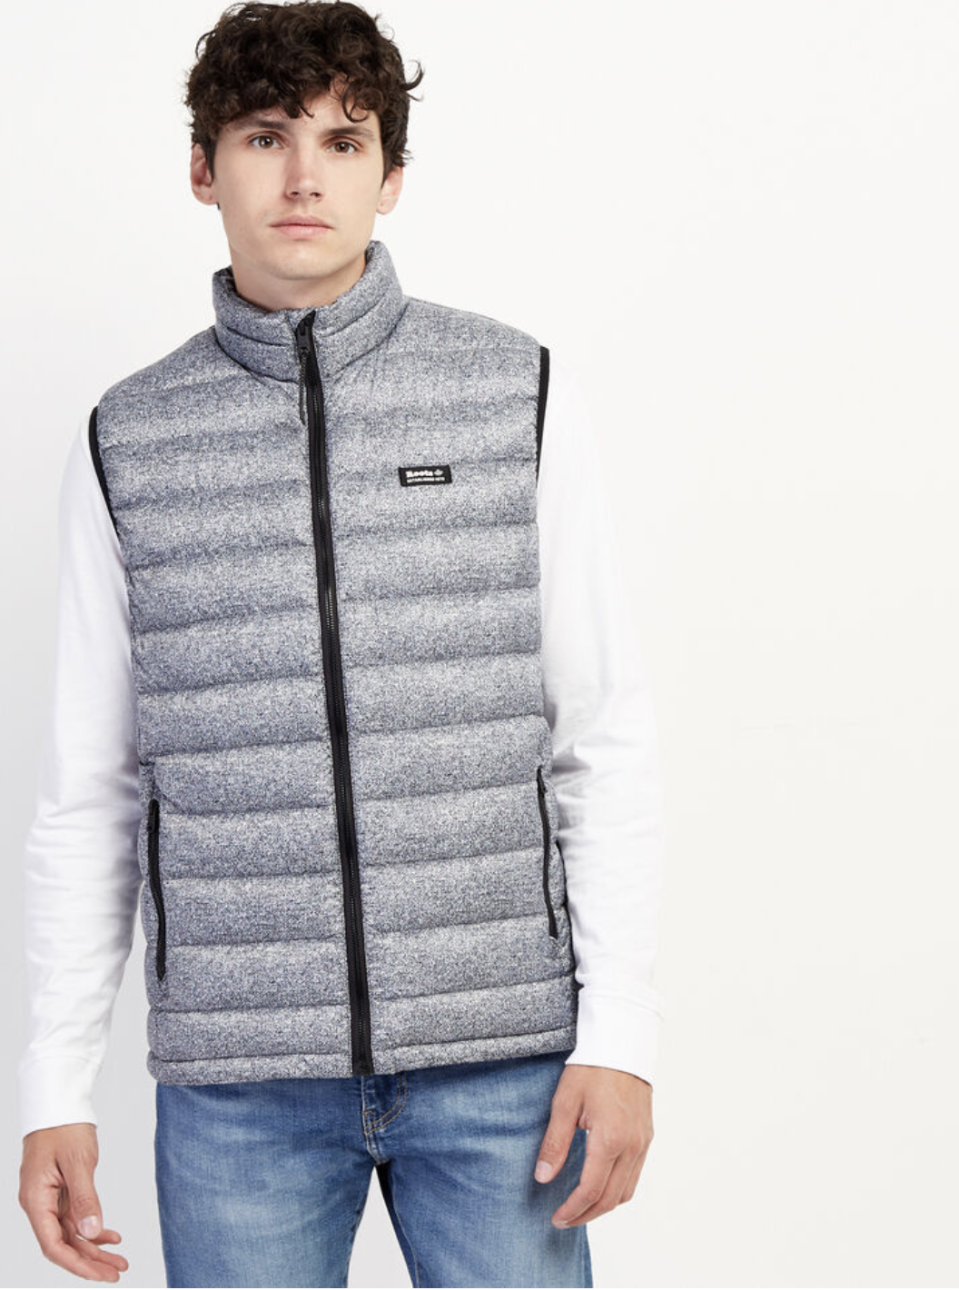 Roots Packable Down Vest. Image via Roots.